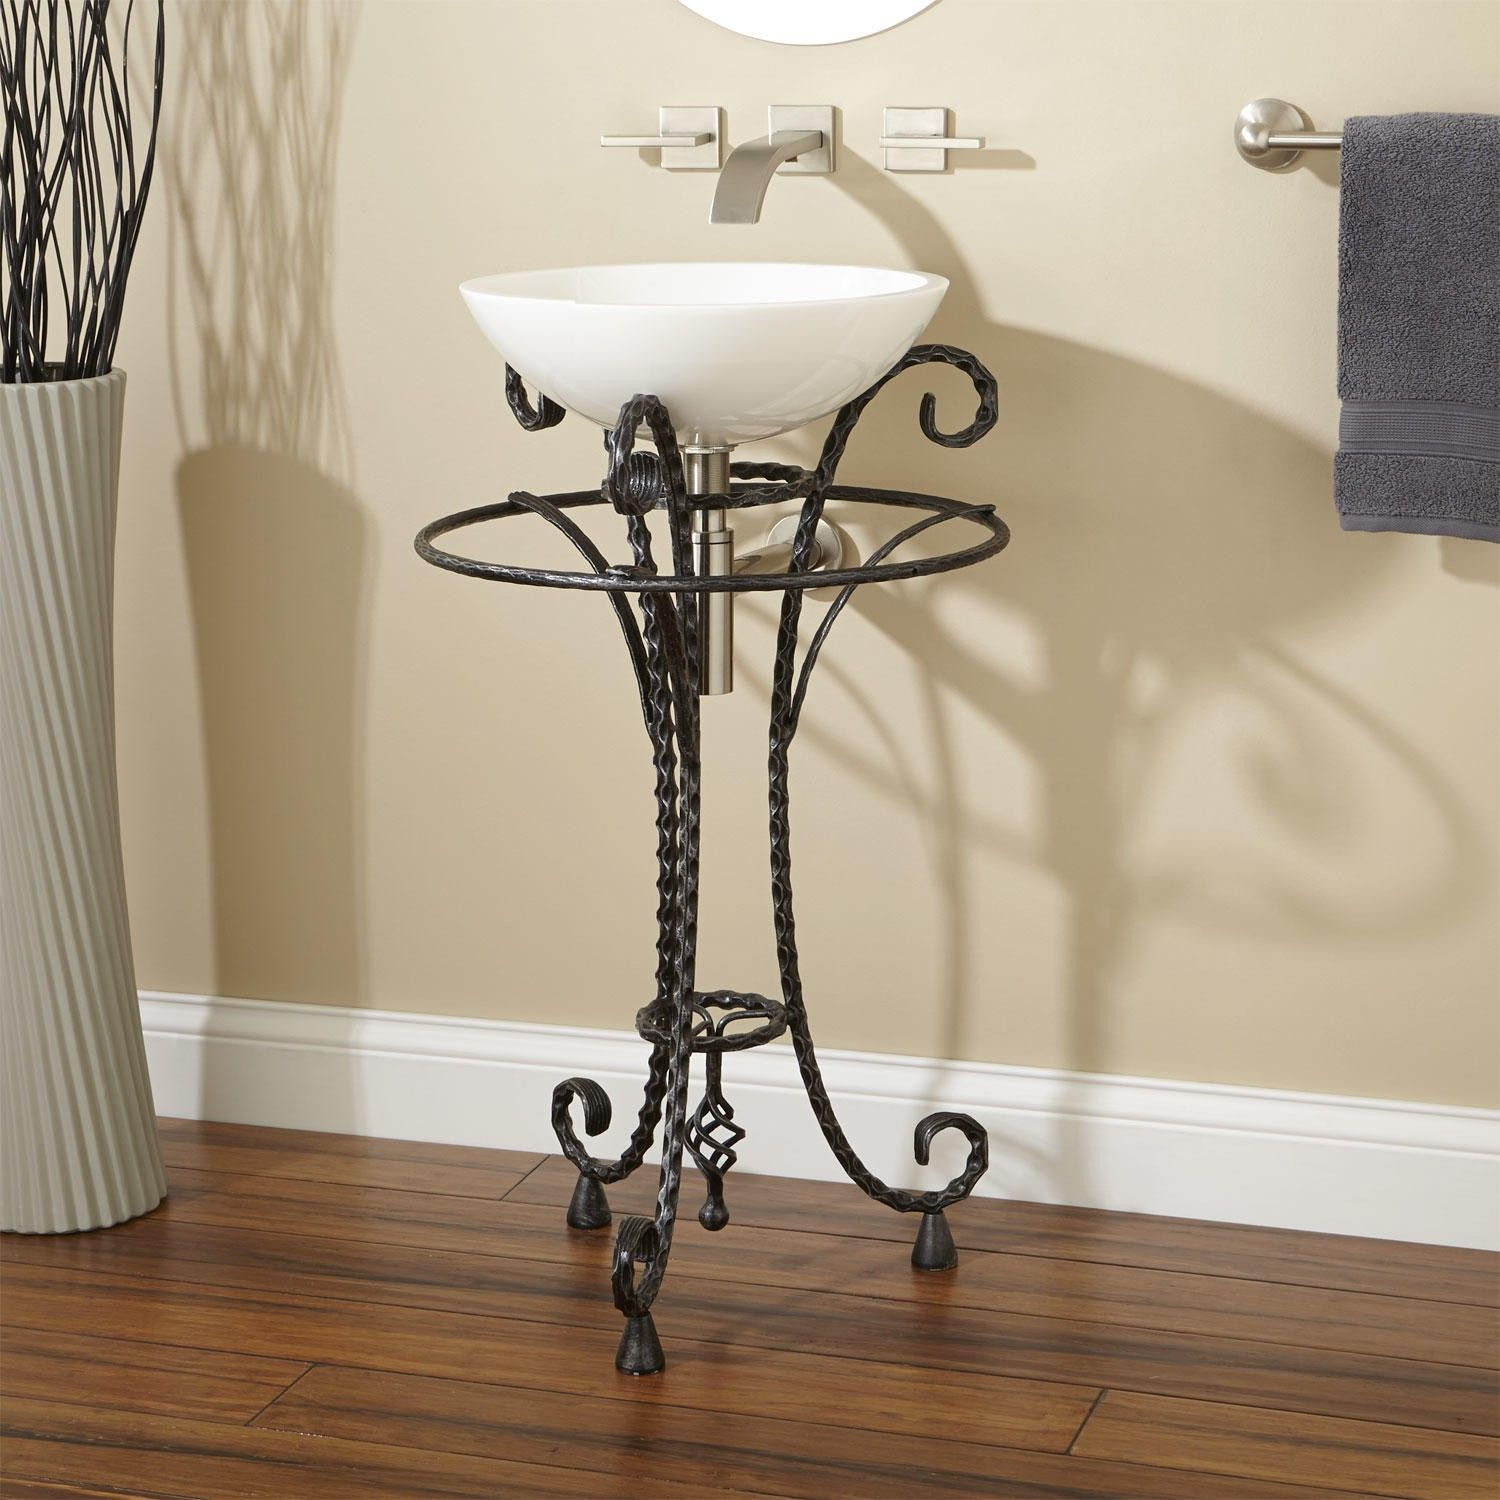 Delarue Wrought Iron Sink Stand With Towel Bar